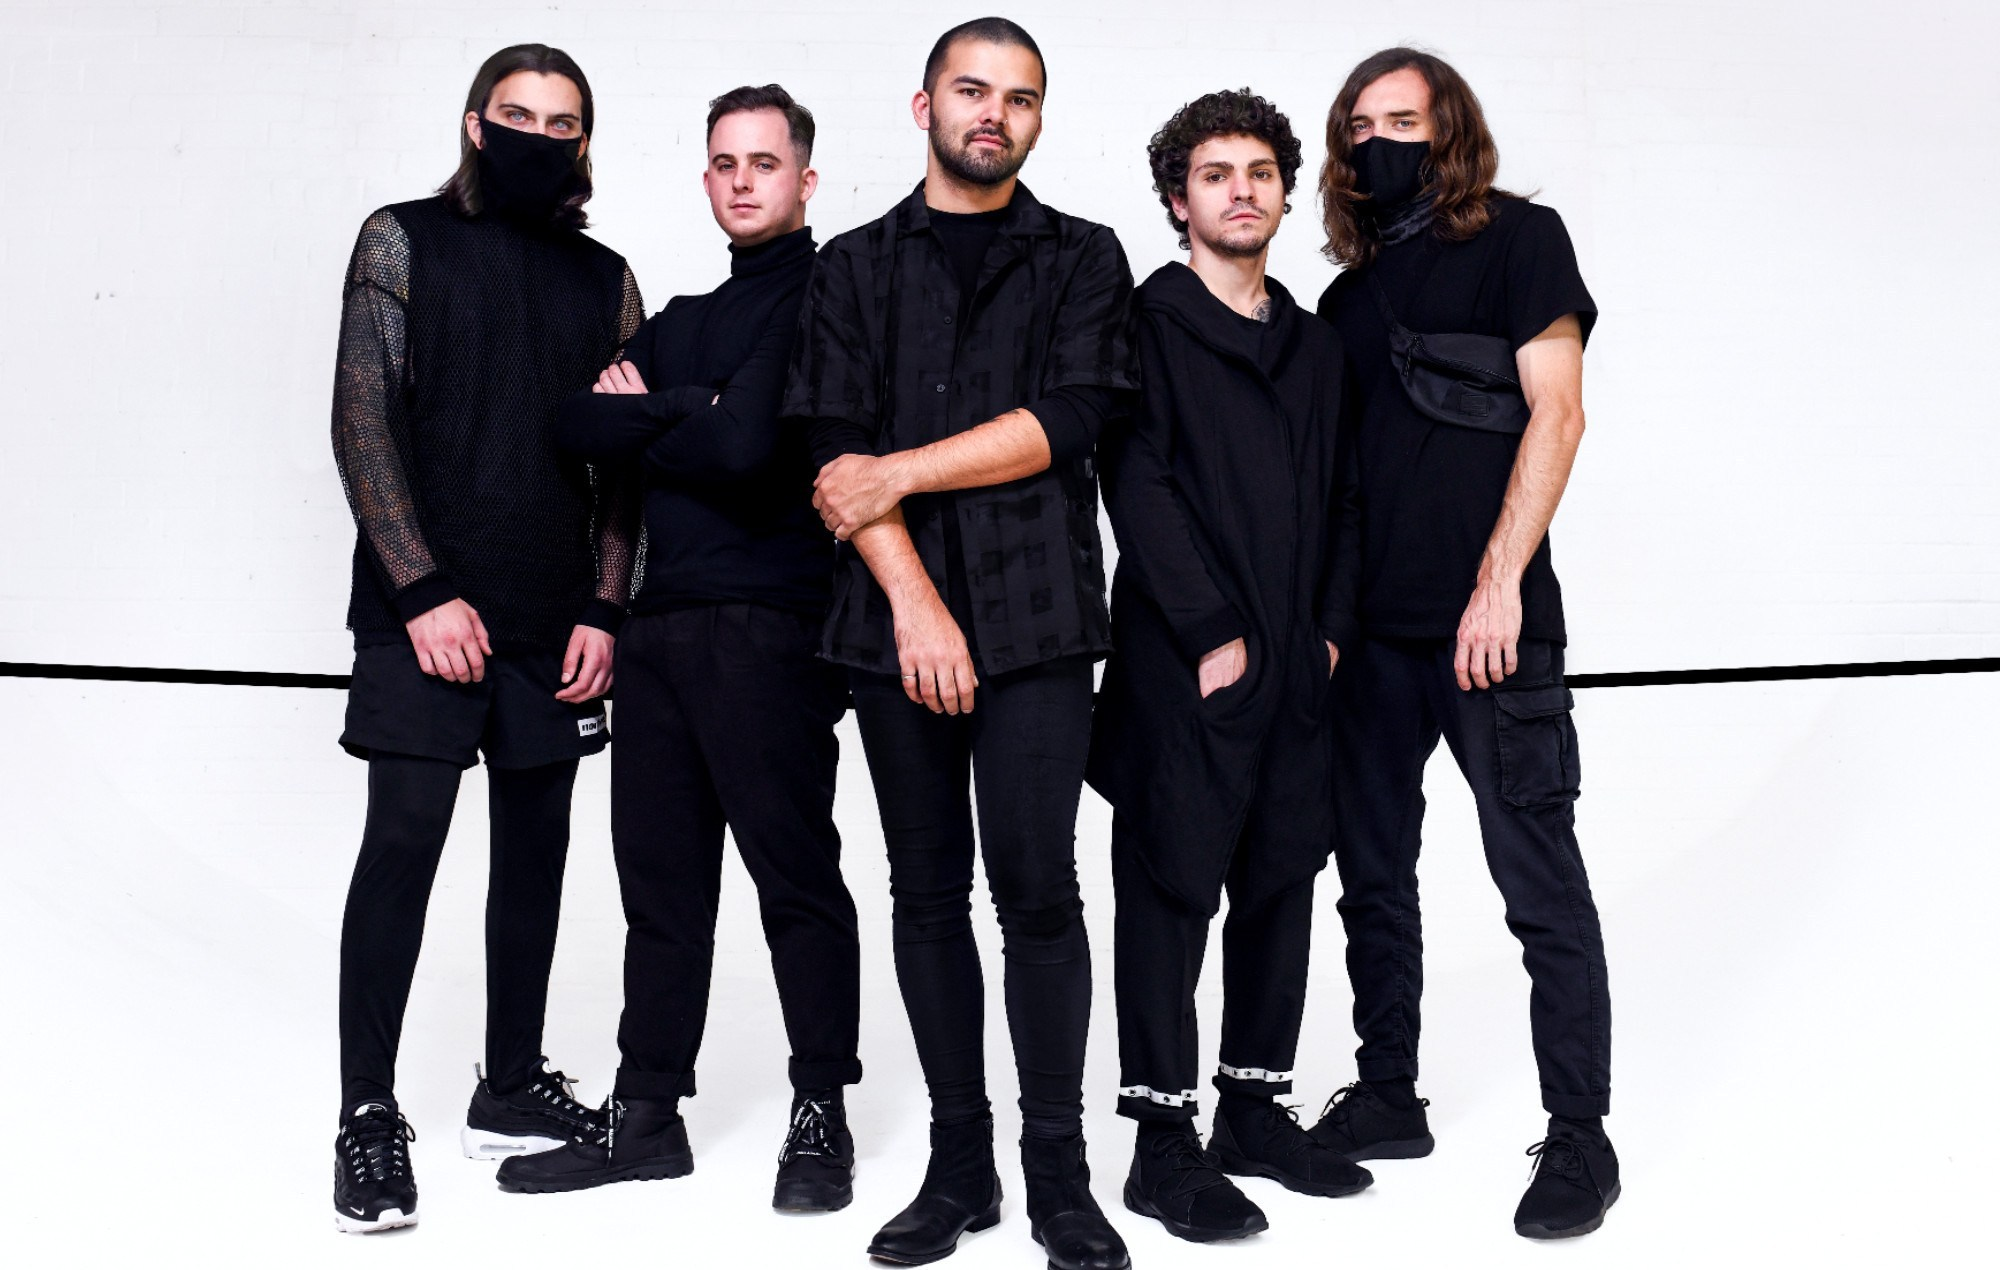 """WATCH NORTHLANE PERFORM """"DETAILS MATTER"""" FROM 'LIVE AT THE ROUNDHOUSE' STREAM"""